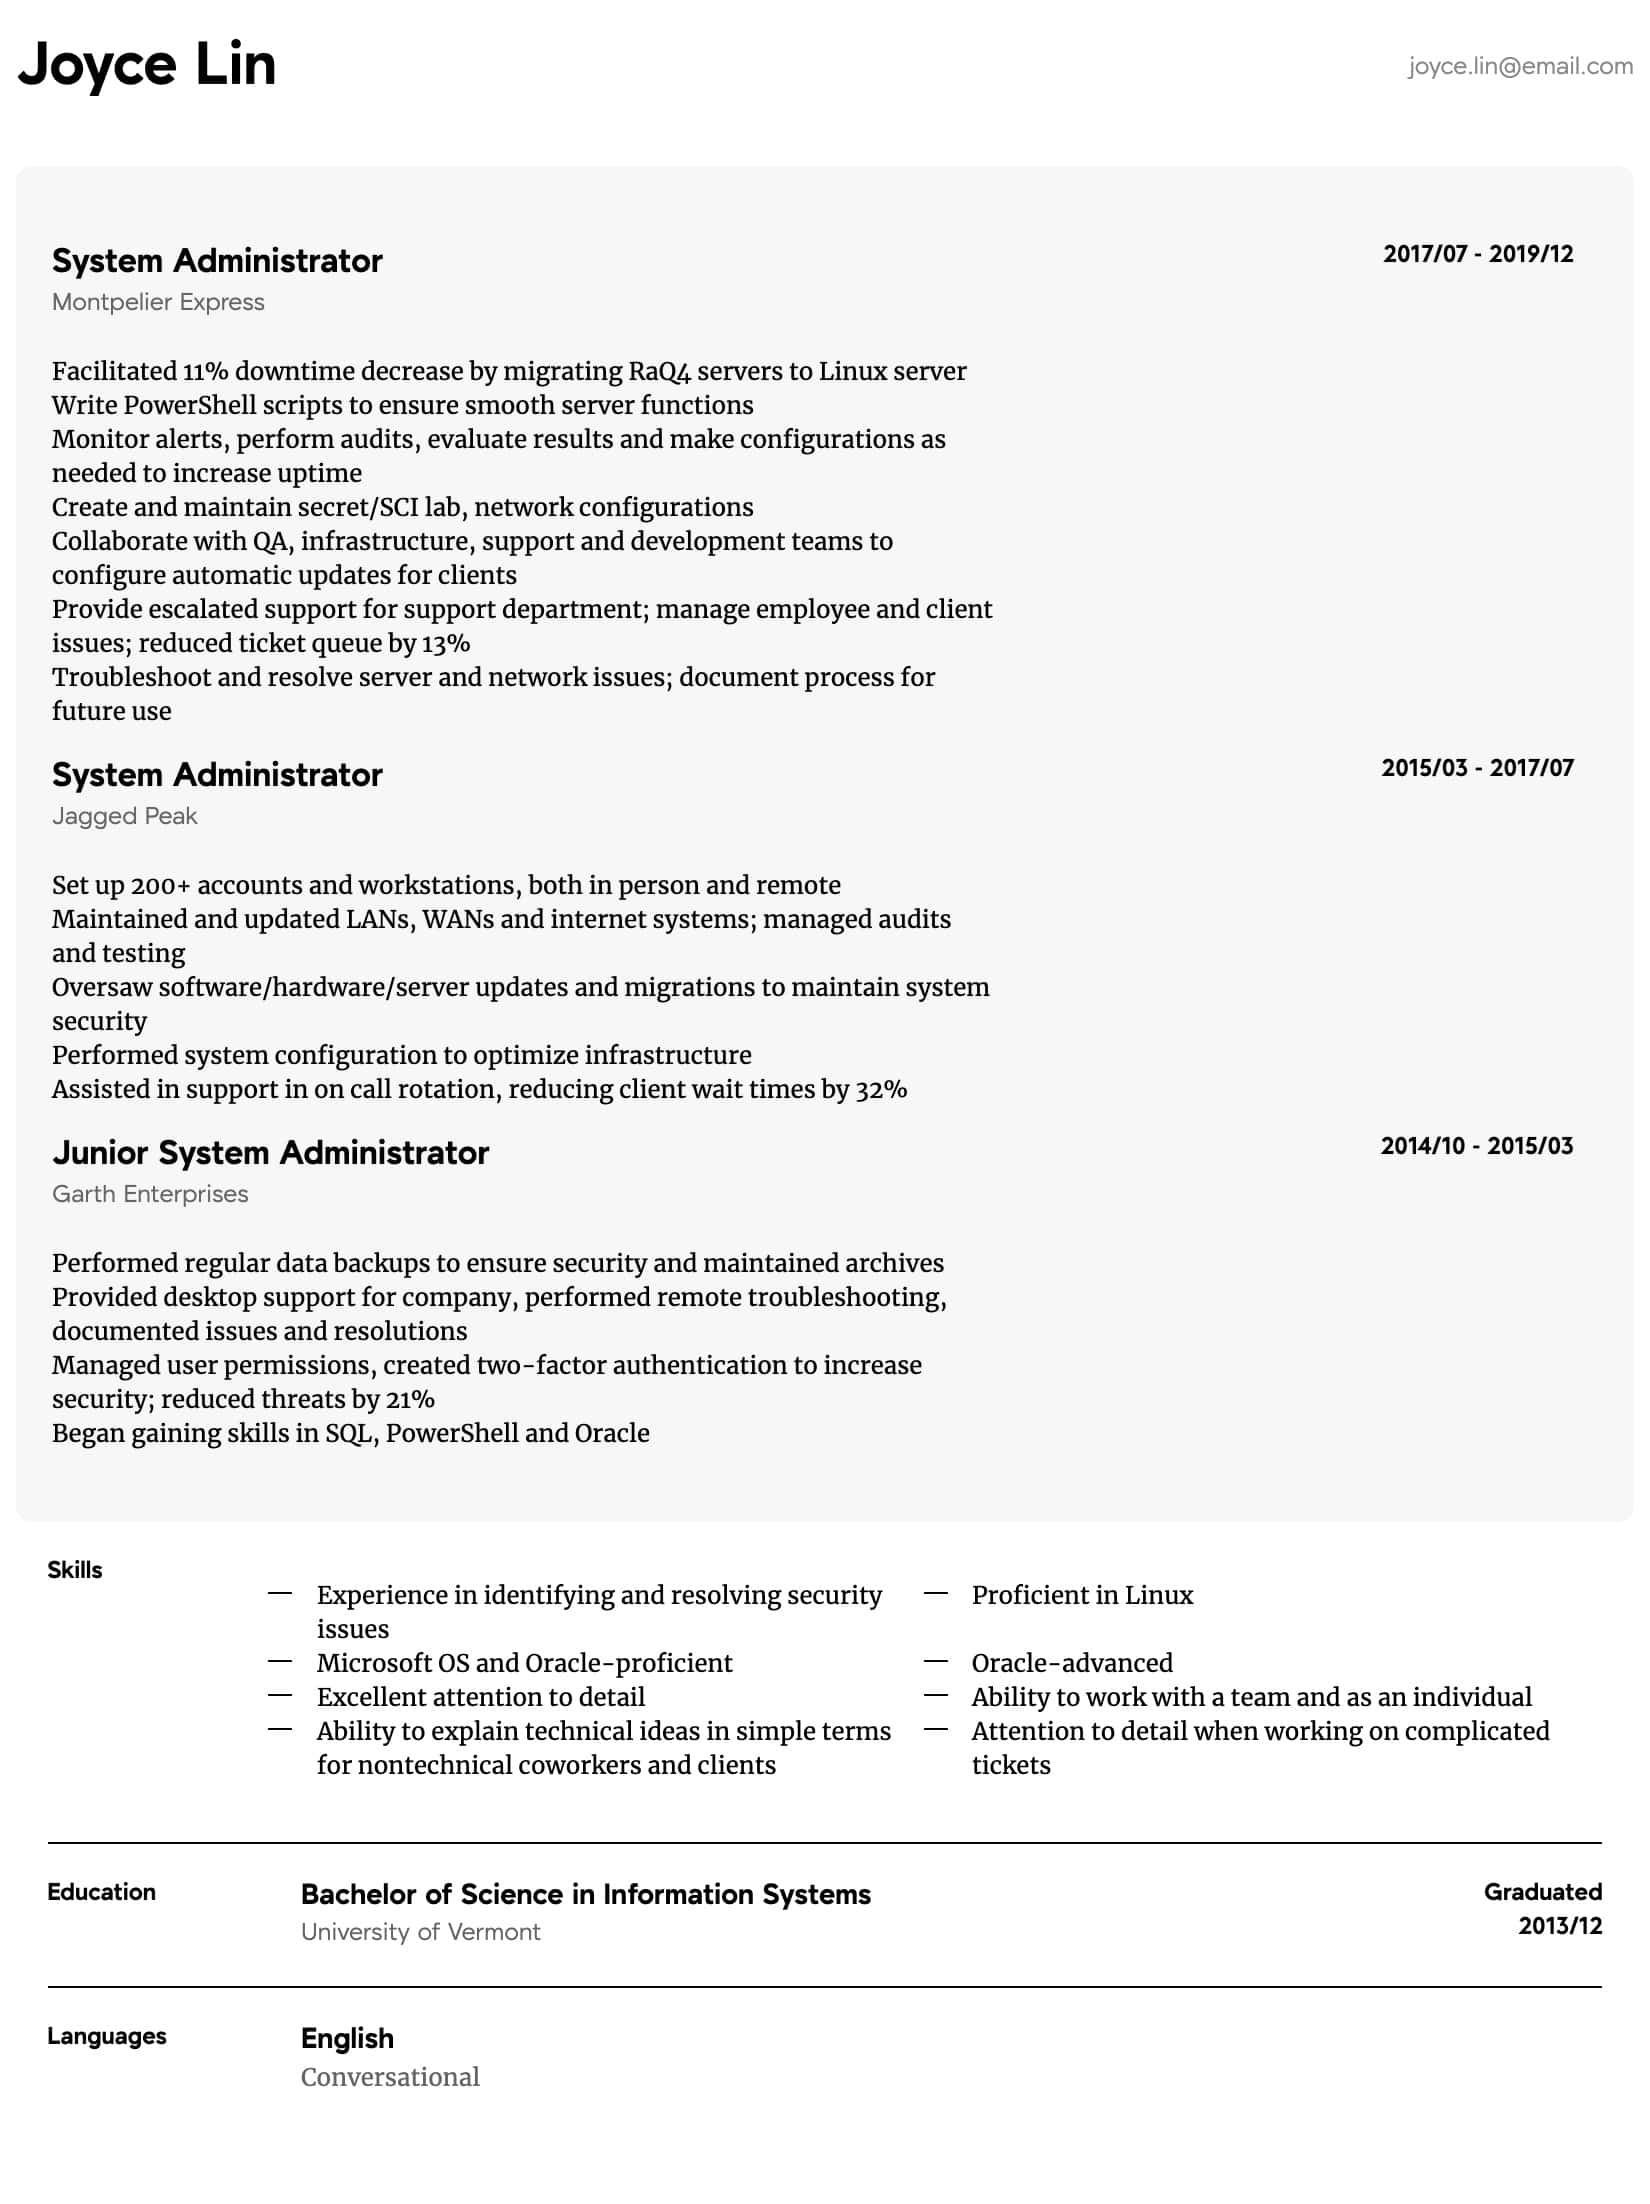 system administrator resume samples all experience levels sample intermediate uber driver Resume System Administrator Resume Sample Download